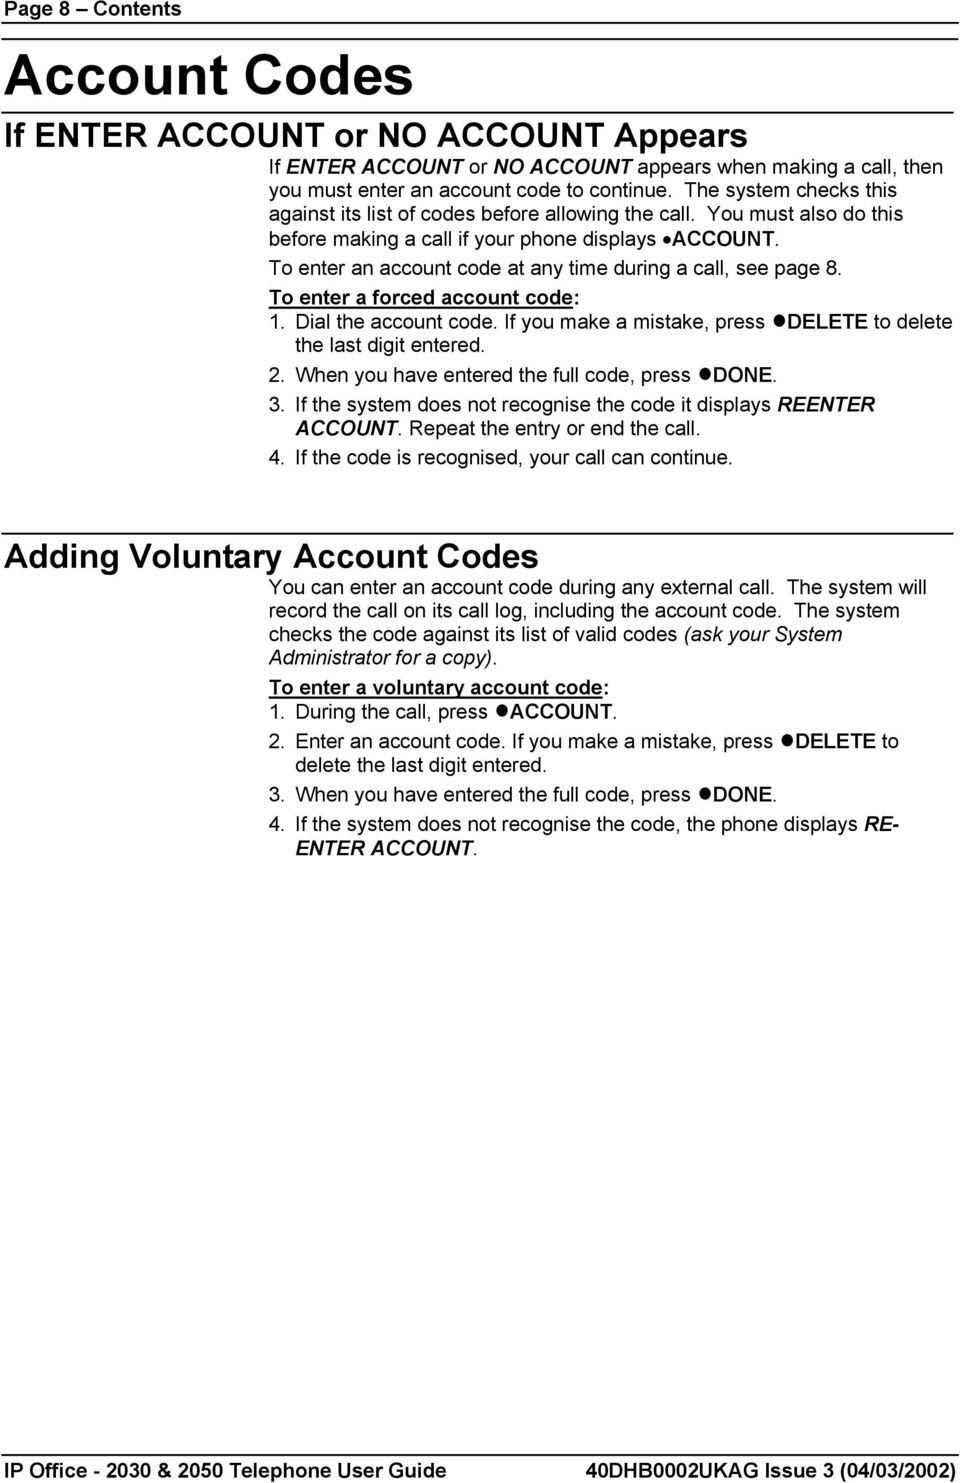 To enter an account code at any time during a call, see page 8. To enter a forced account code: 1. Dial the account code. If you make a mistake, press DELETE to delete the last digit entered. 2.